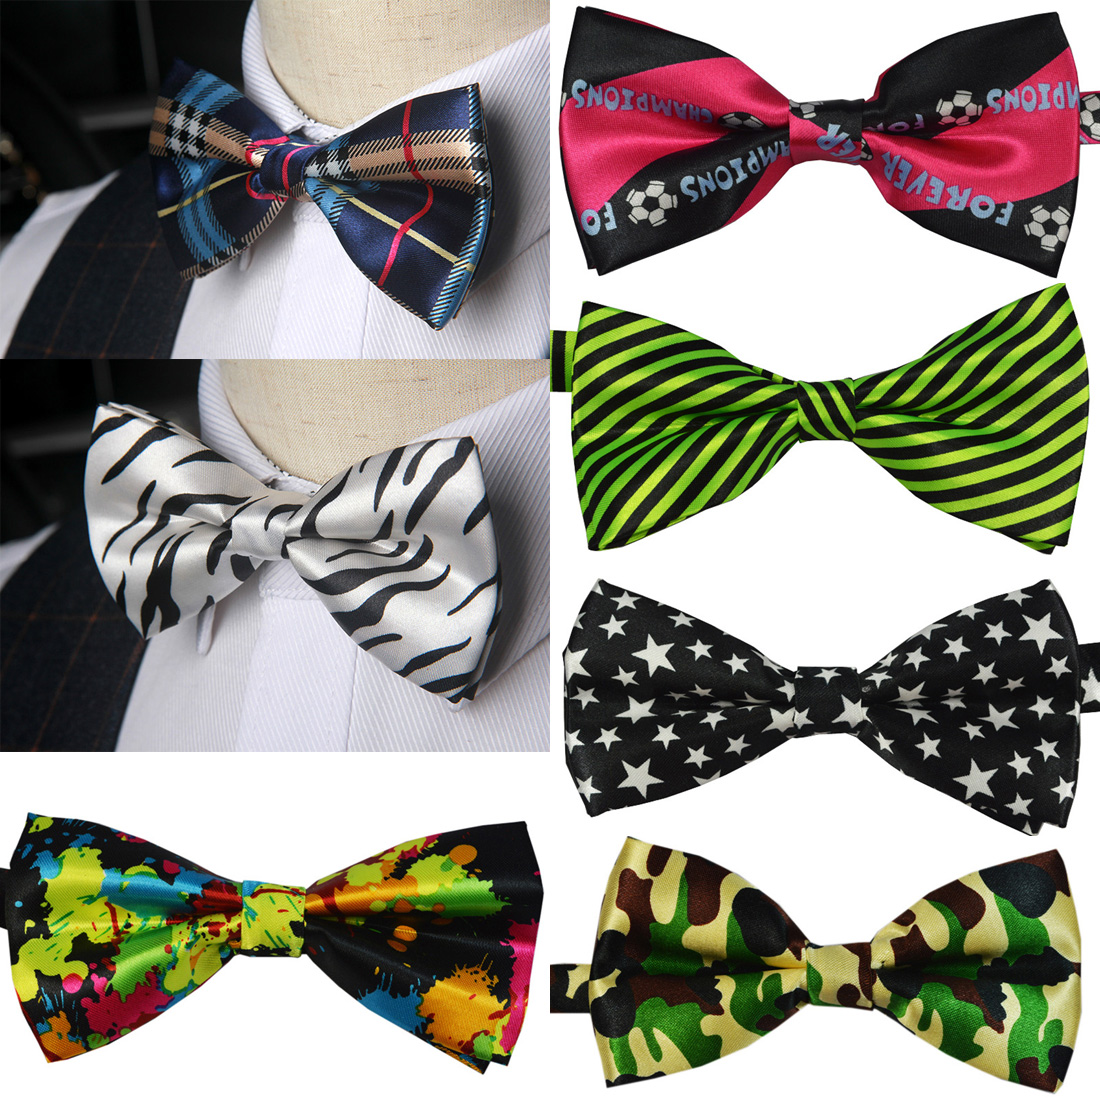 2019 New Men's Bow Tie Men's Wedding Print Bow Tie Party Bar Party Casual Style Lattice Bow Tie Fashion Trend Men's Accessories